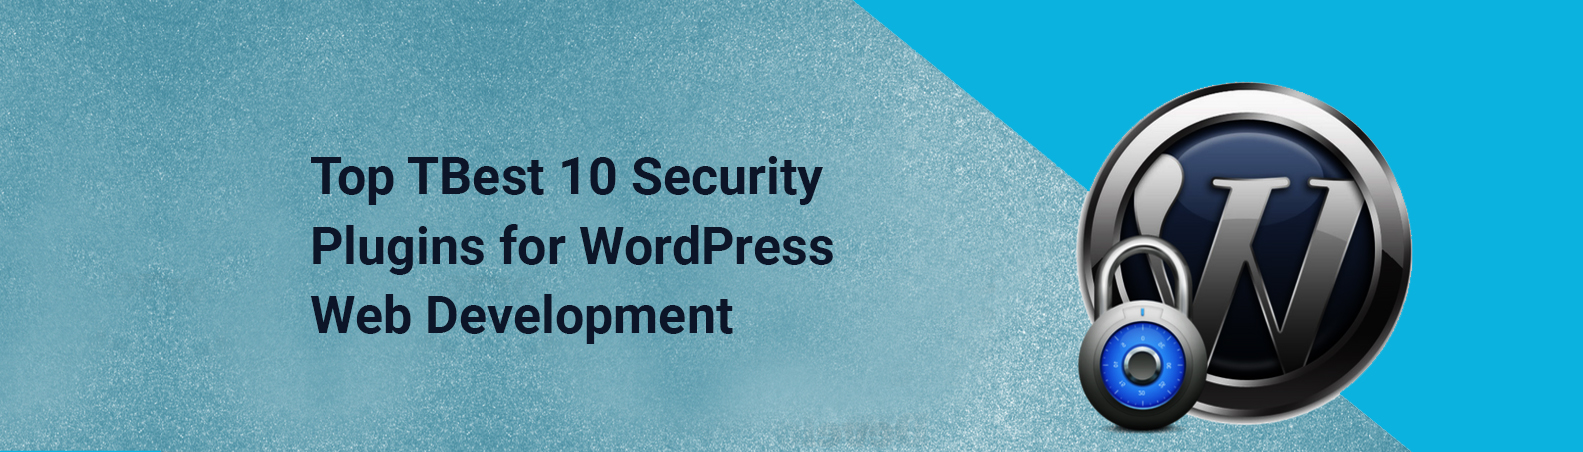 Best 10 Security Plugins for WordPress Web Development